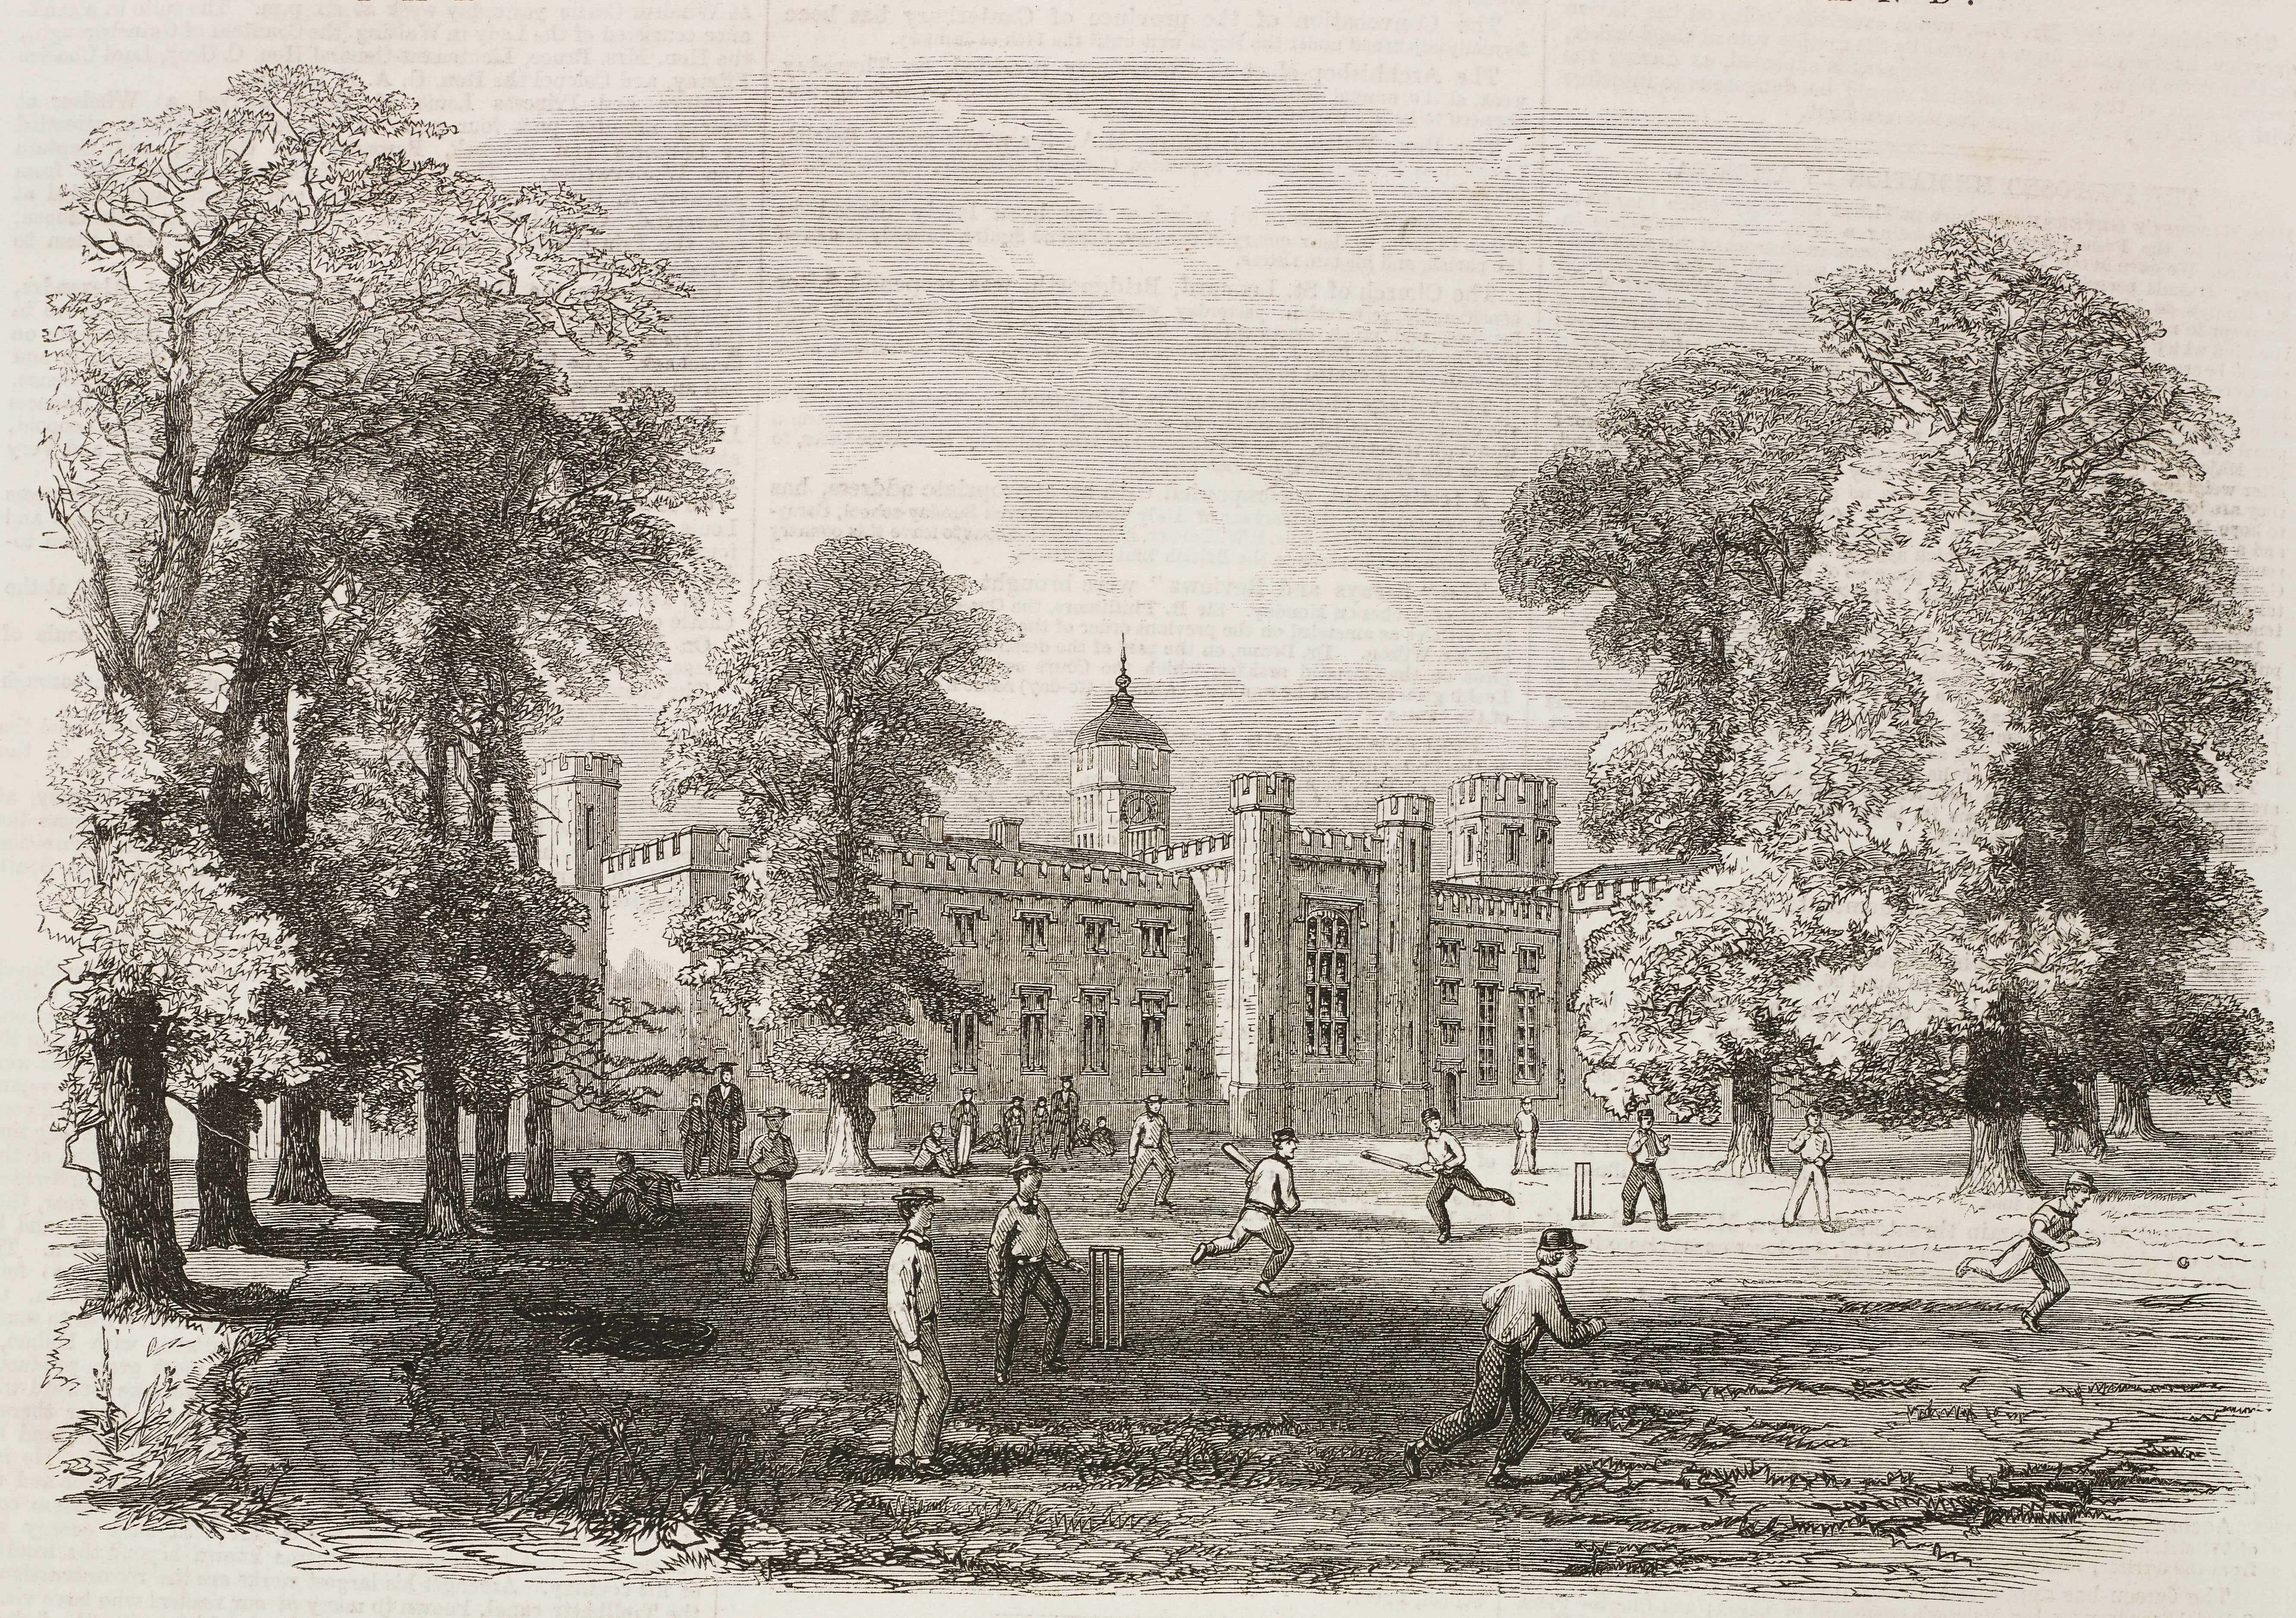 An illustration of Rugby school